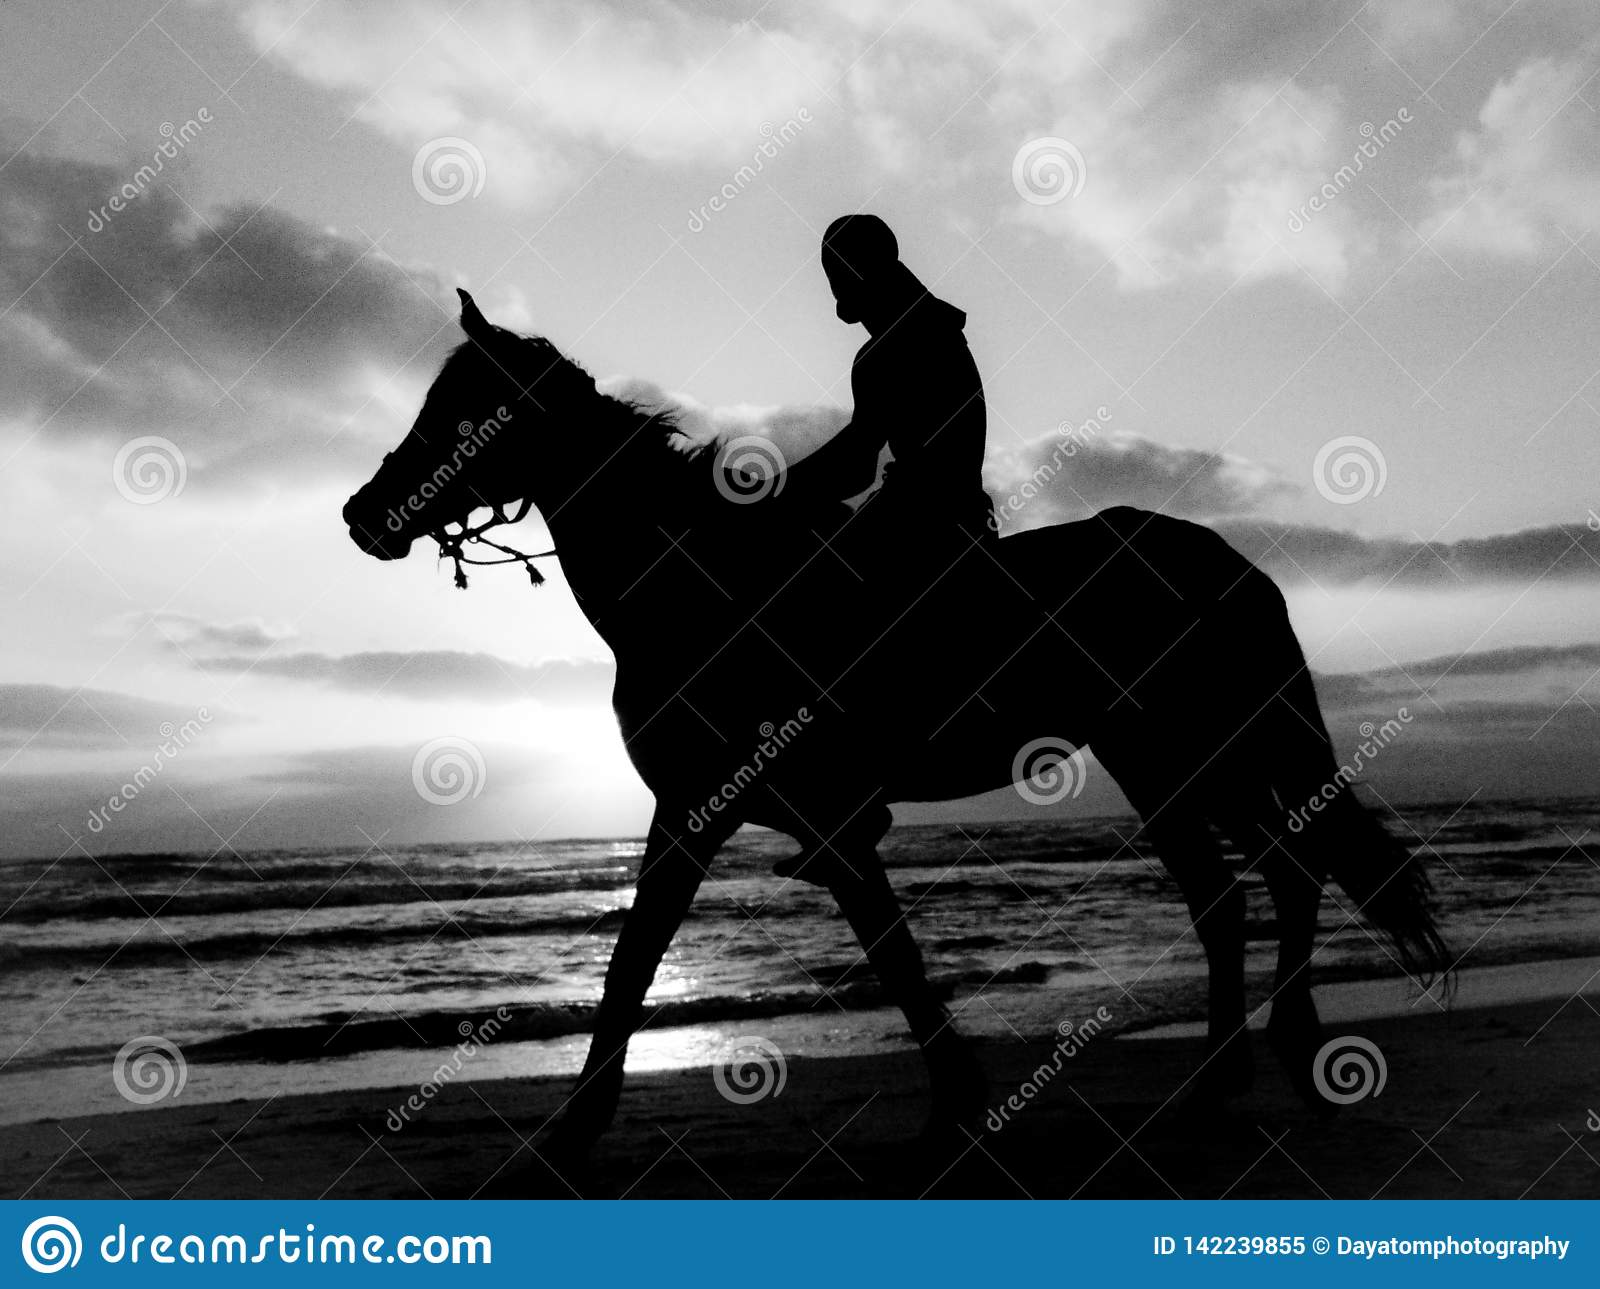 Black and white silhouette of a man riding a horse on a sandy beach under a cloudy sky during sunset